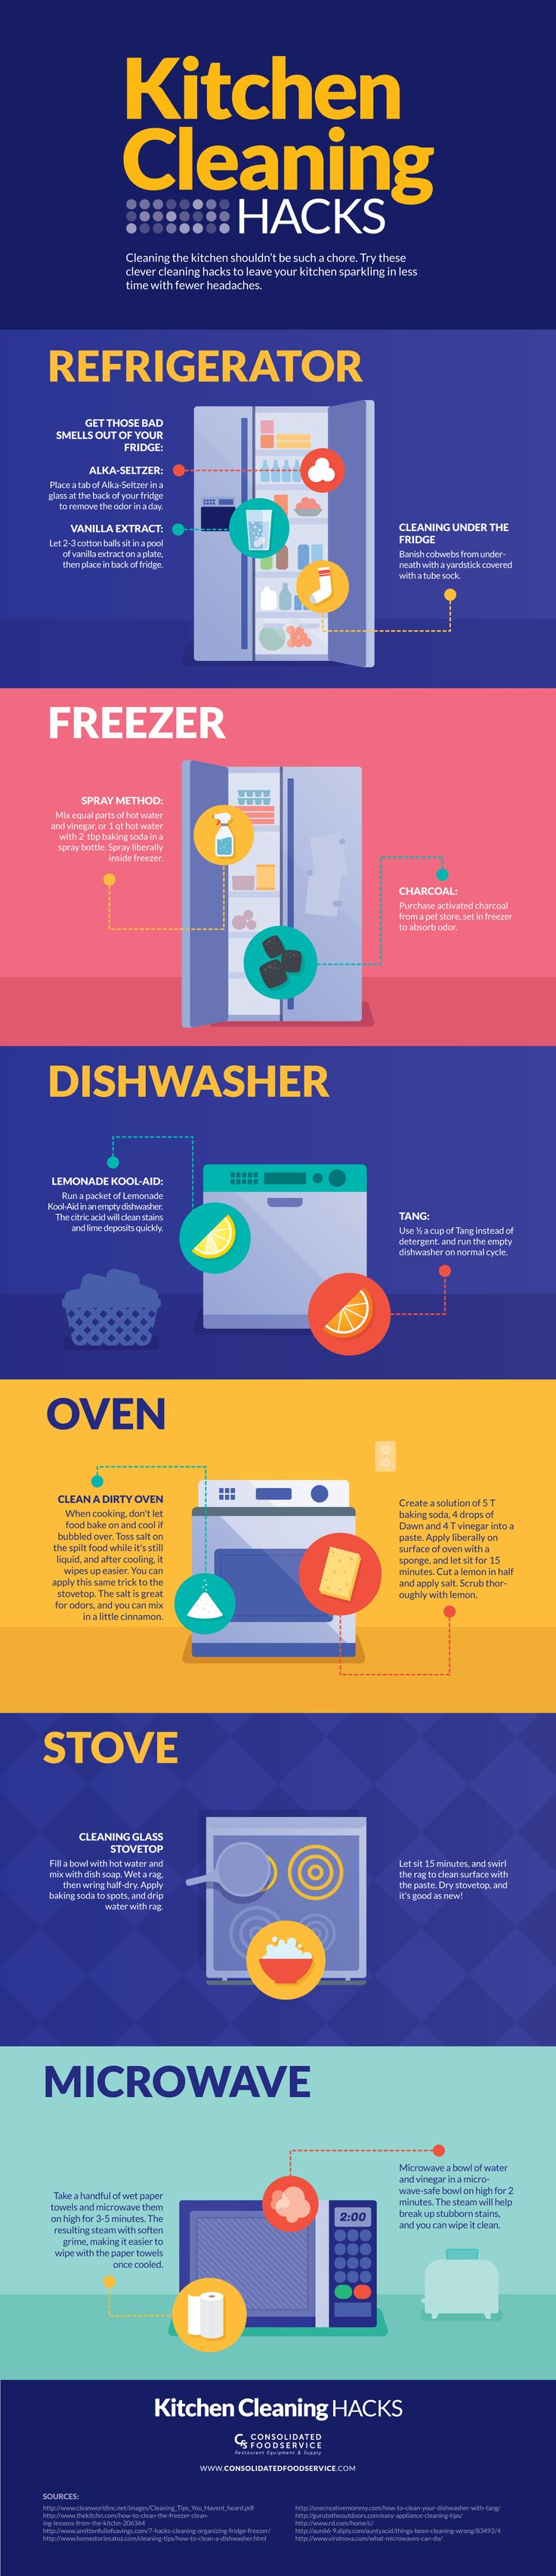 Uncategorized Cleaning Kitchen Appliances best 20 cleaning appliances ideas on pinterest all the in your kitchen might not be definition of fun but